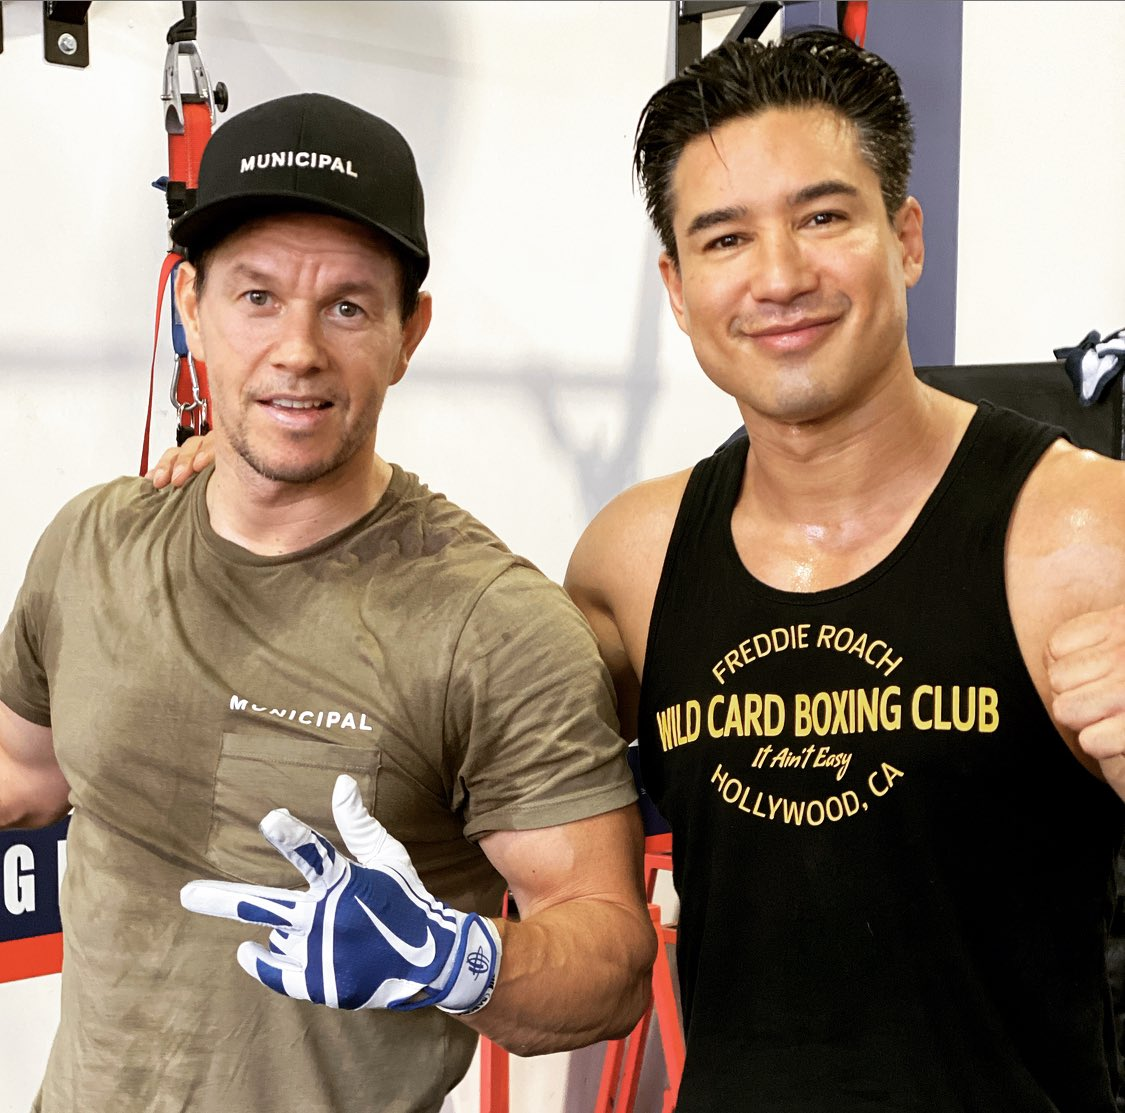 Gettin' it in with the homie. This is how we wake up on a Sunday! @markwahlberg @F45Training #TeamTraining